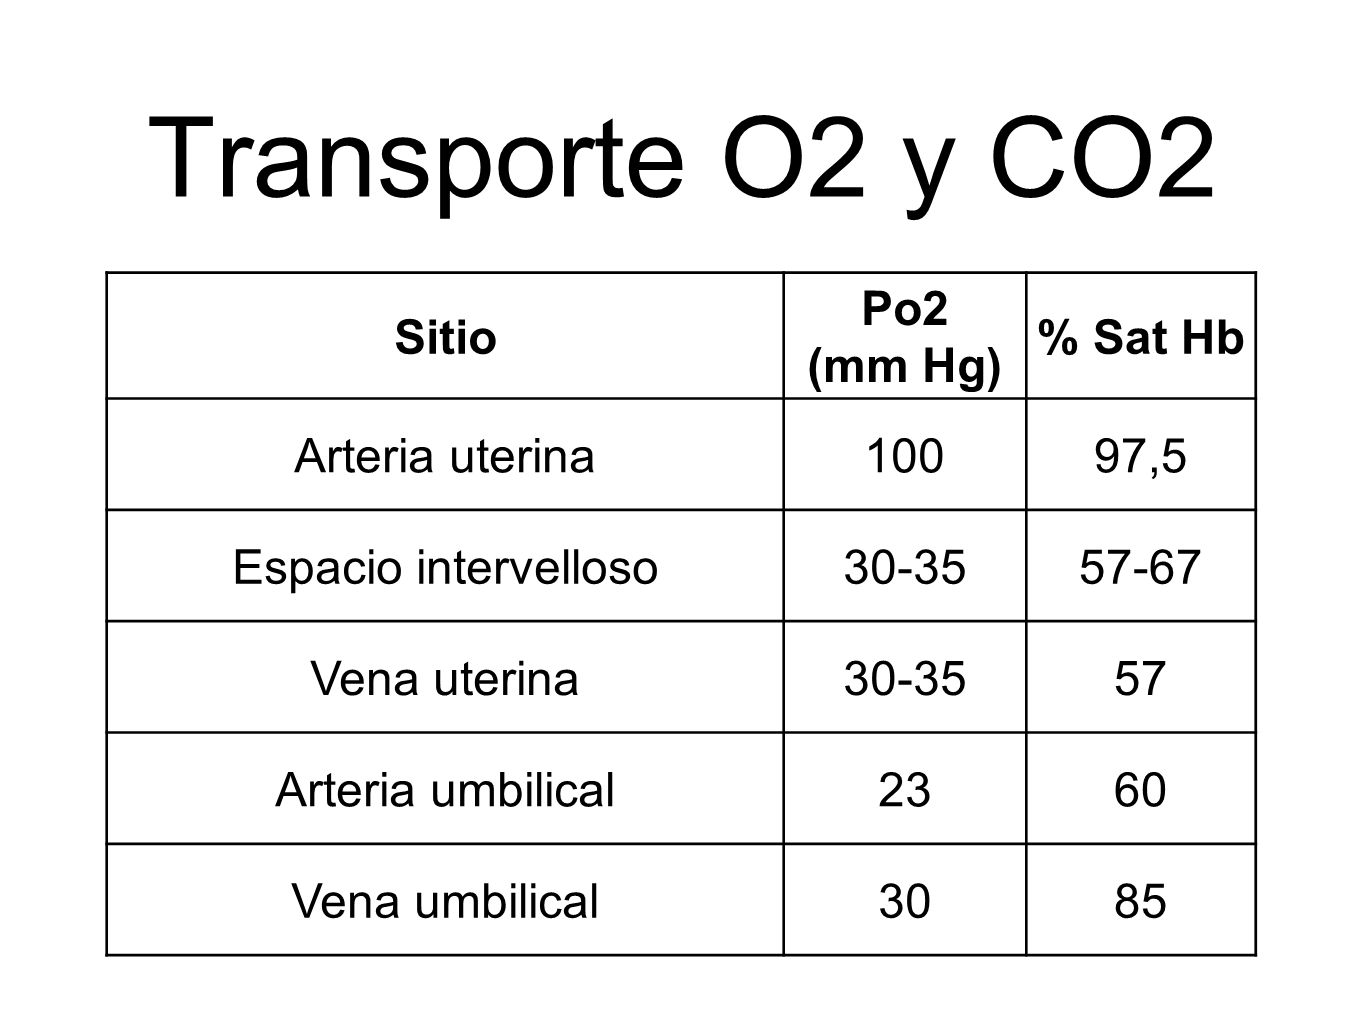 Transporte O2 y CO2 Sitio Po2 (mm Hg) % Sat Hb Arteria uterina 100